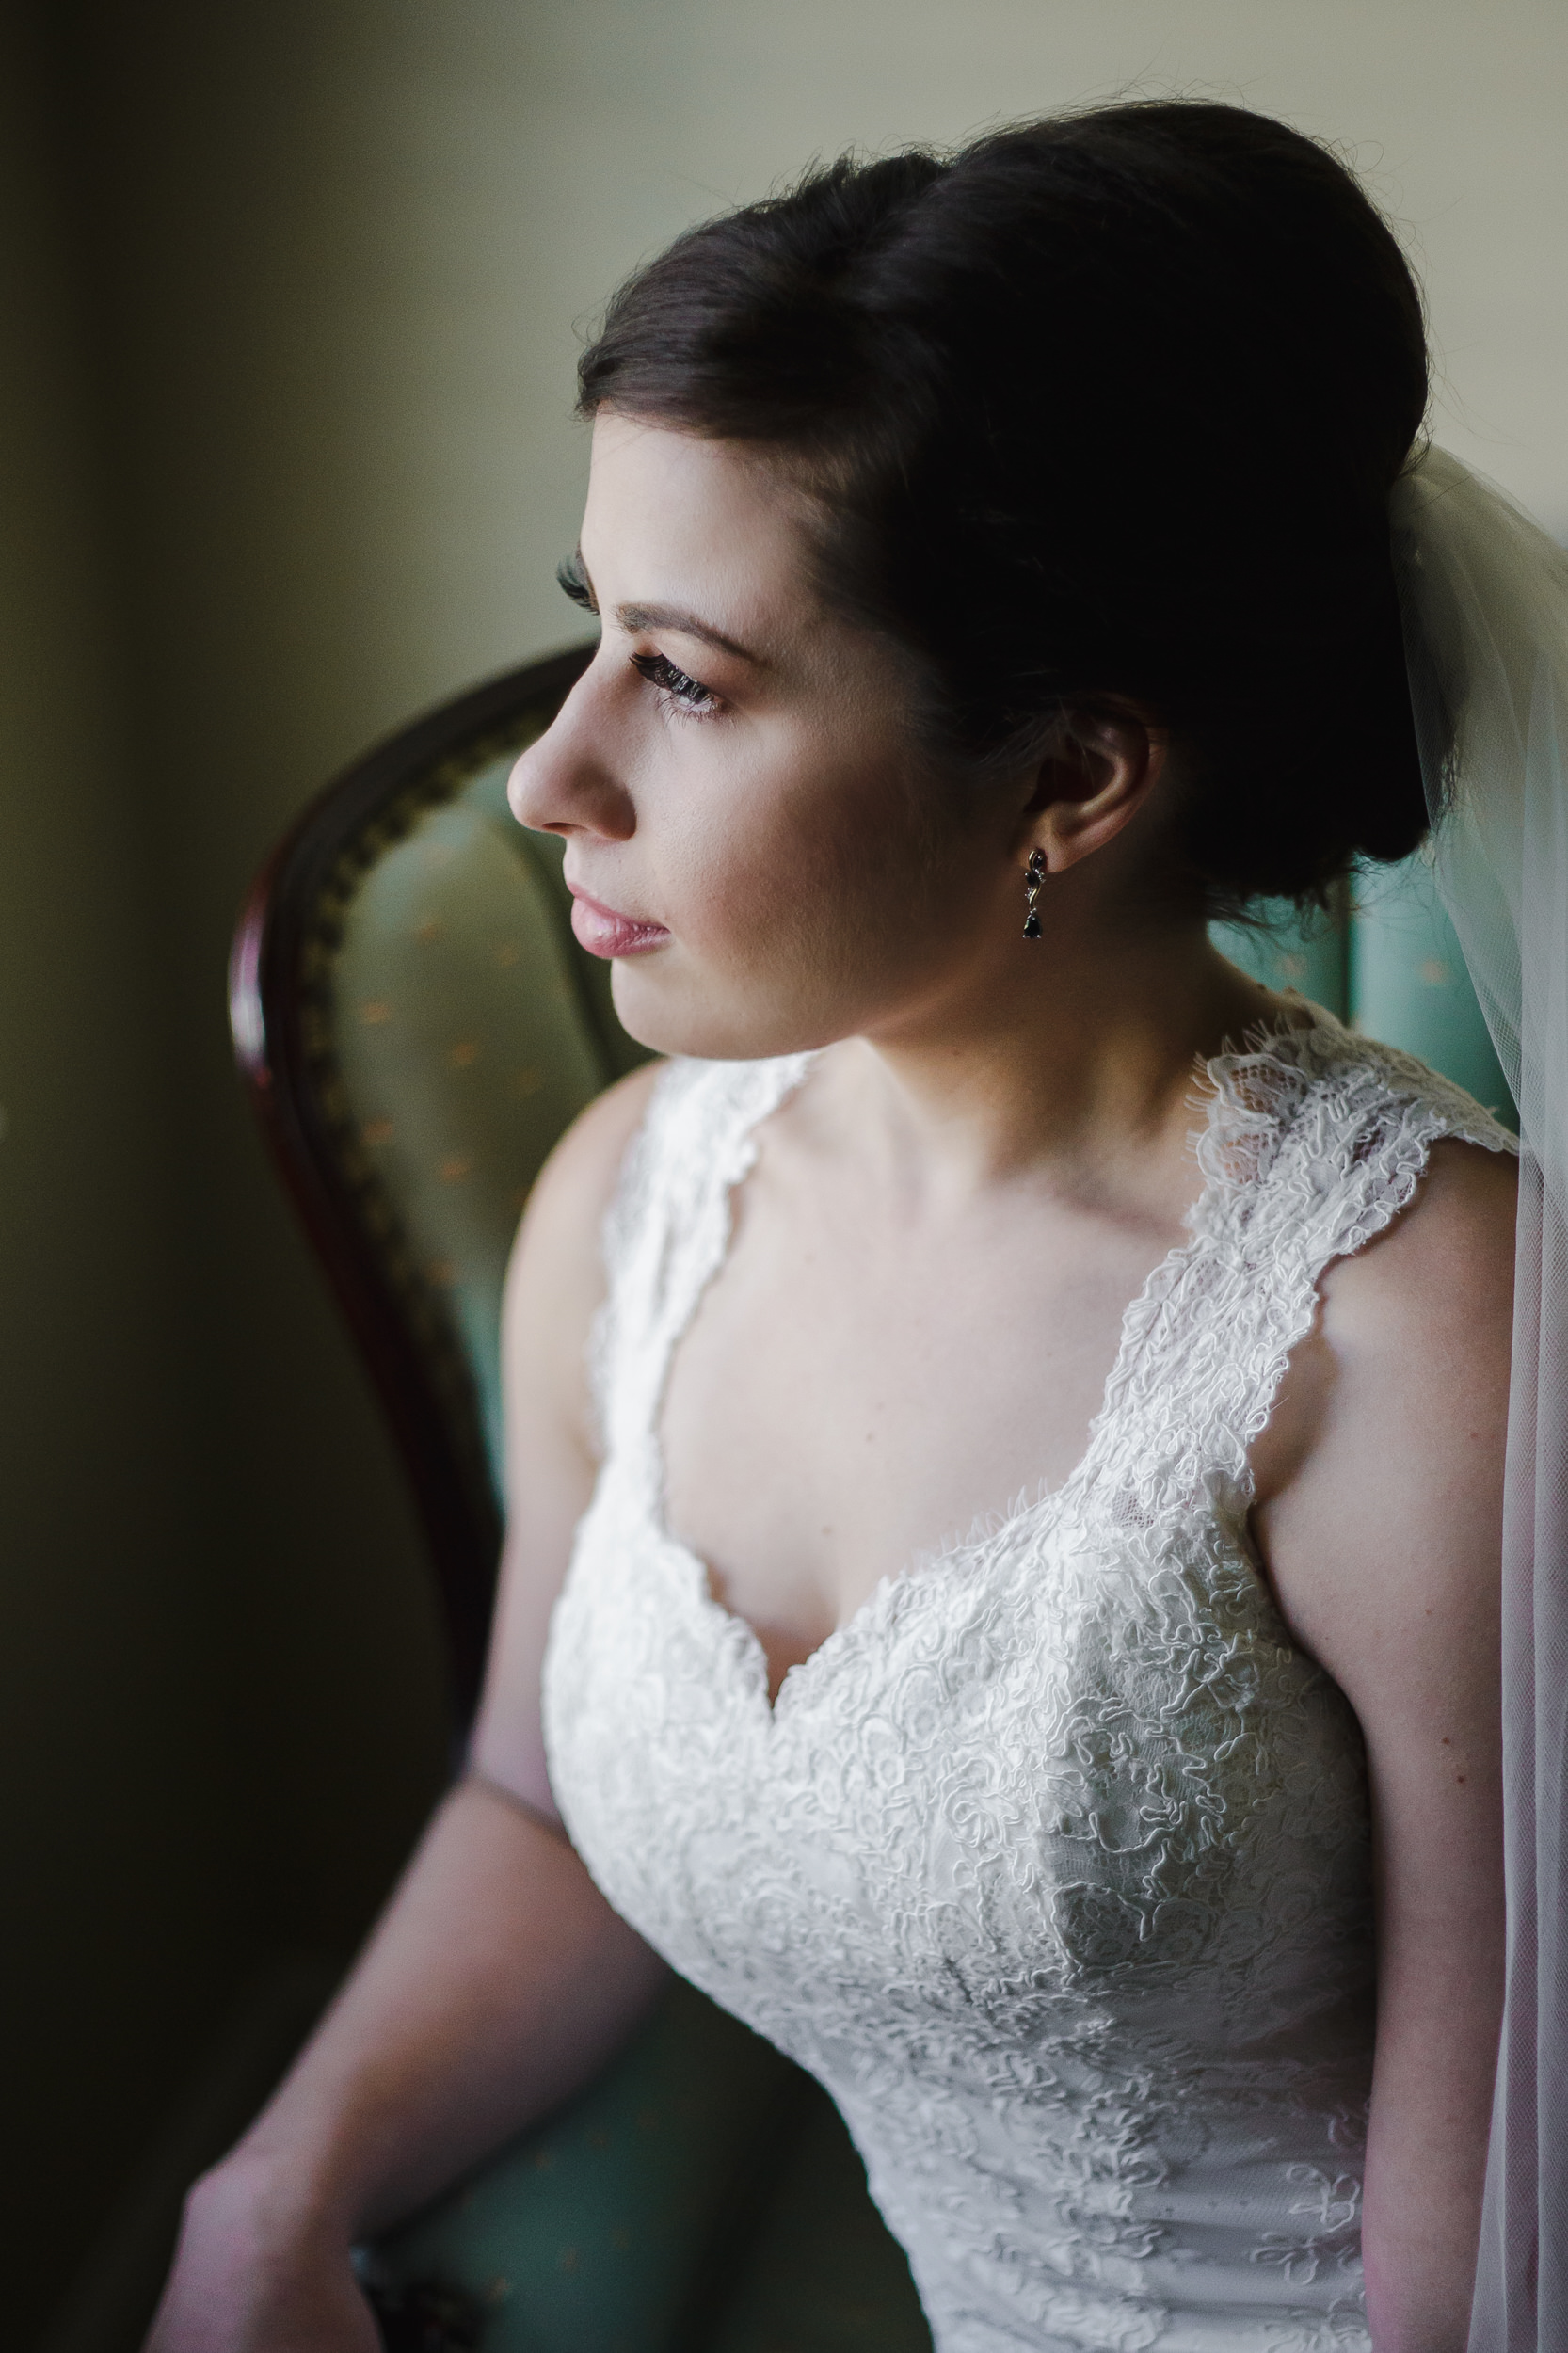 wedding bride portrait beauty shot chair window light